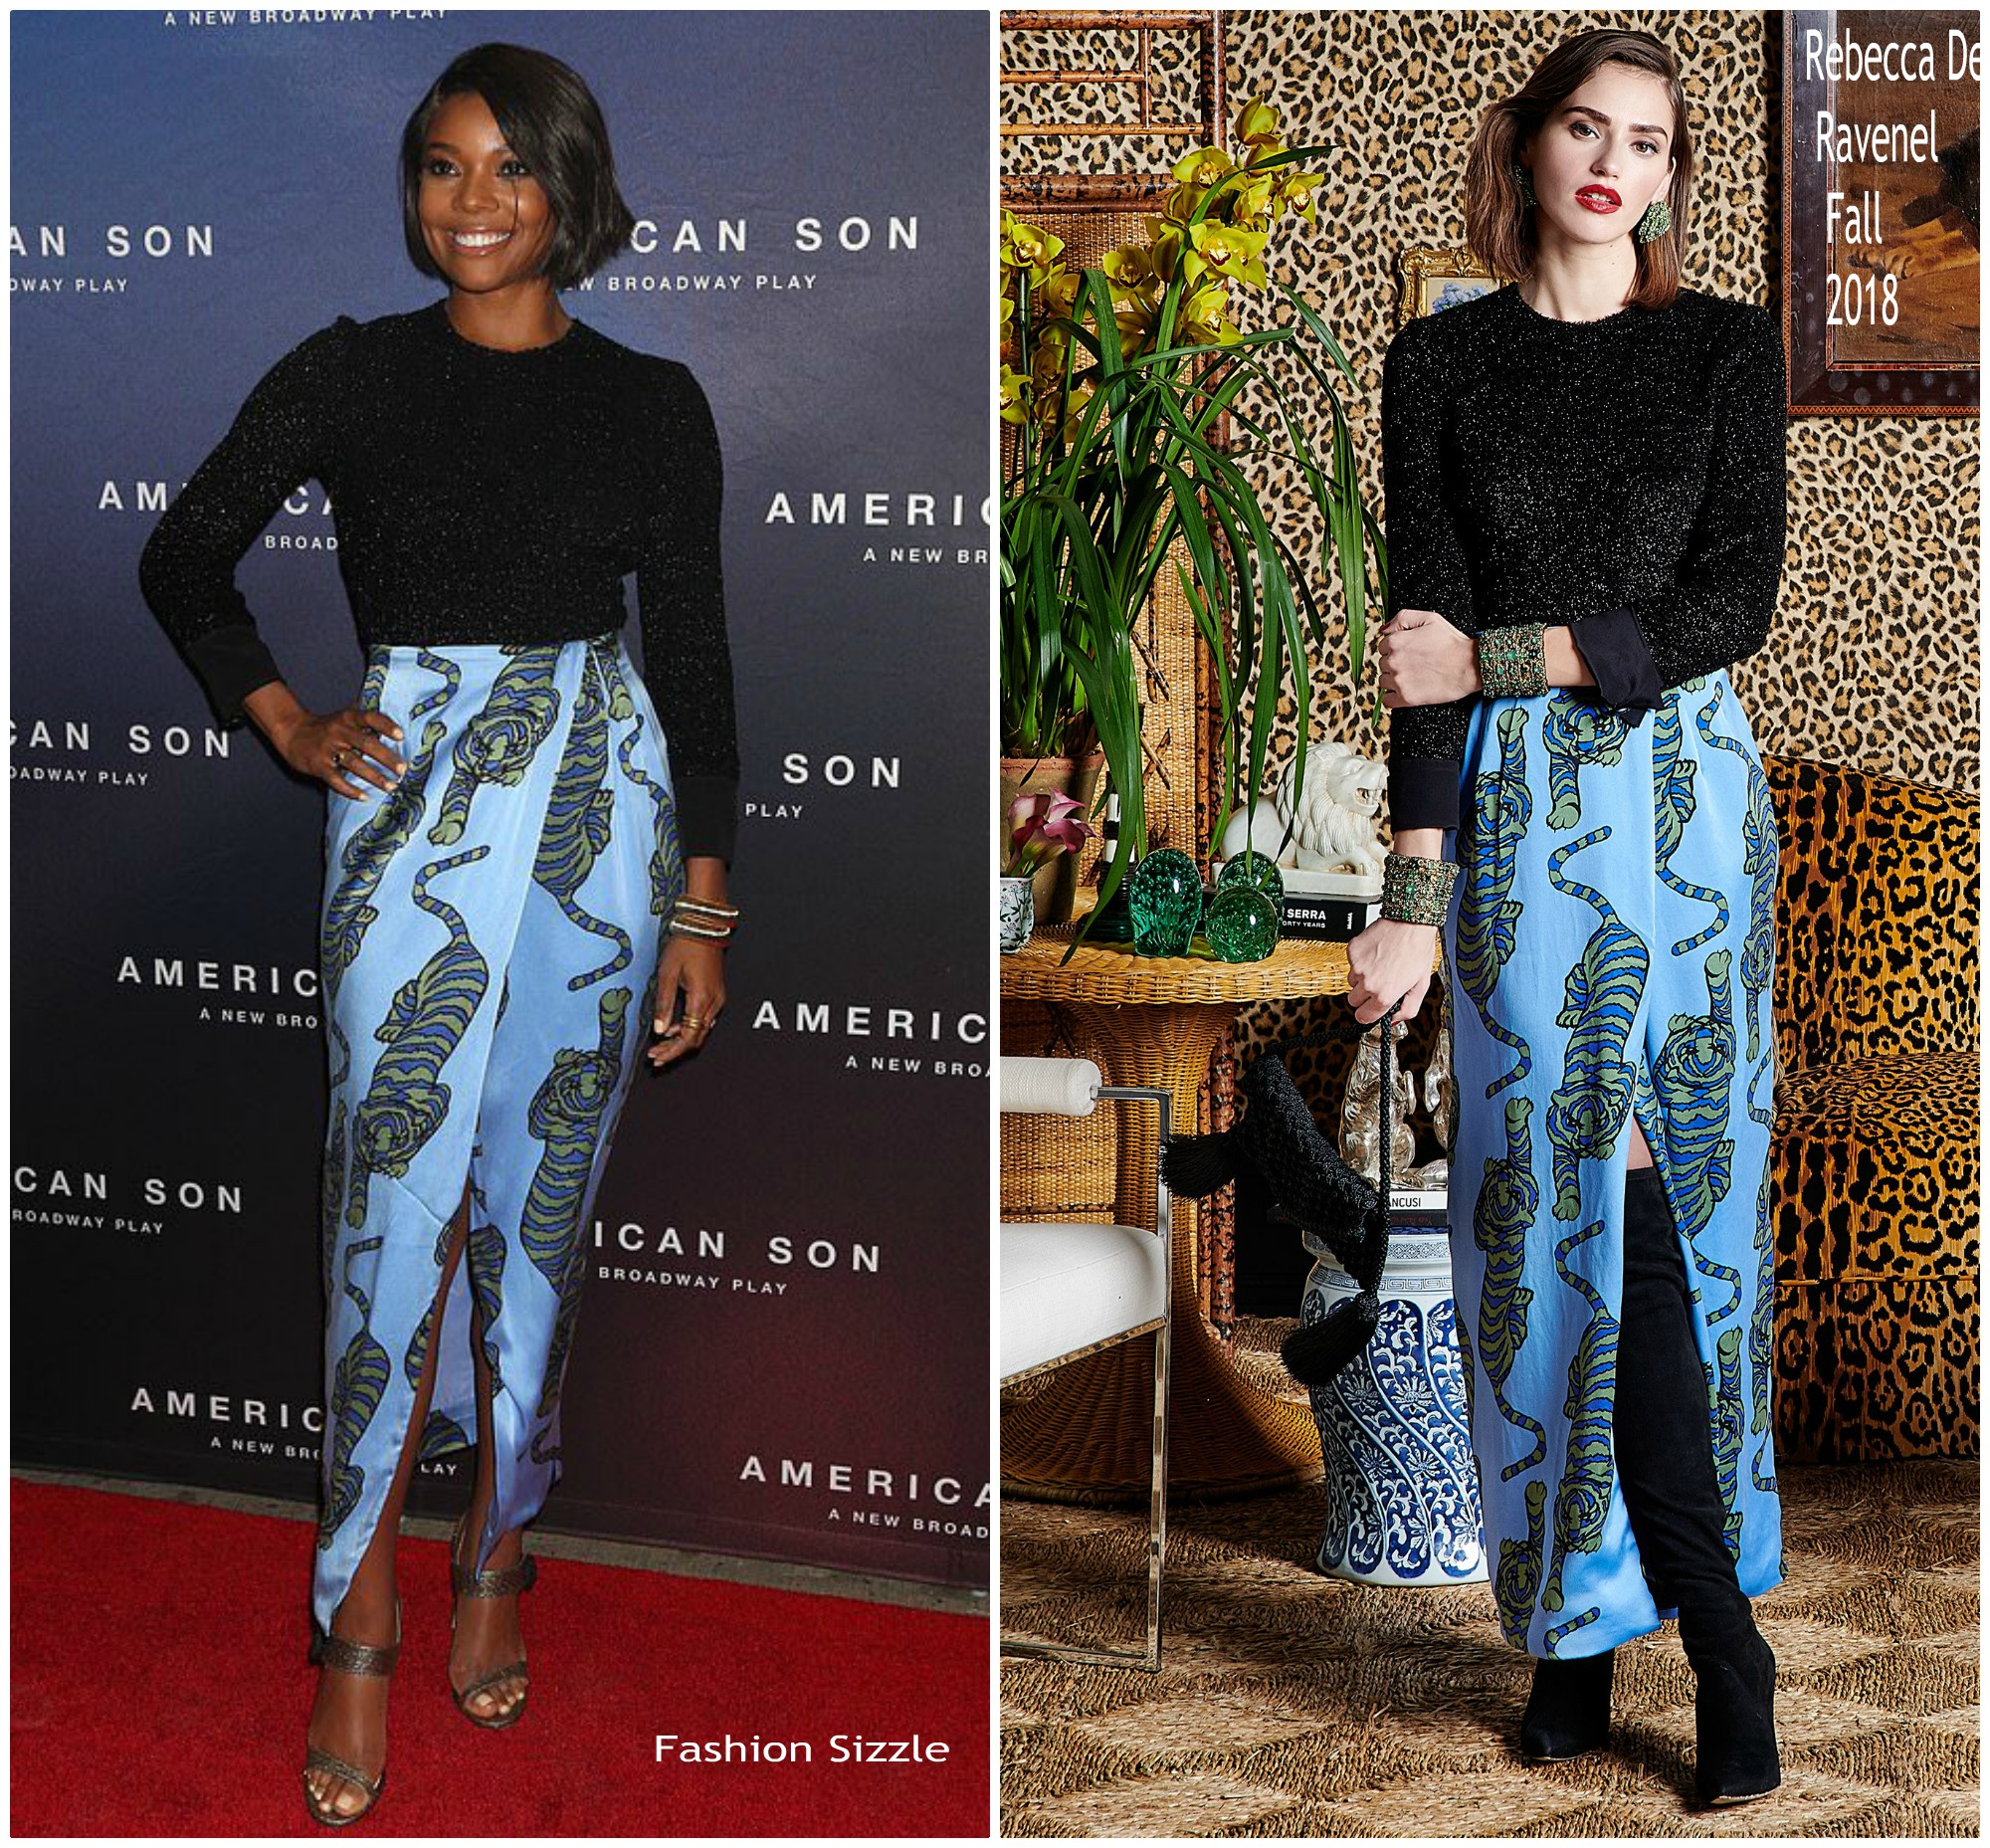 gabrielle-union-in-rebecca-de-ravenel-american-son-broadway-opening-night-party